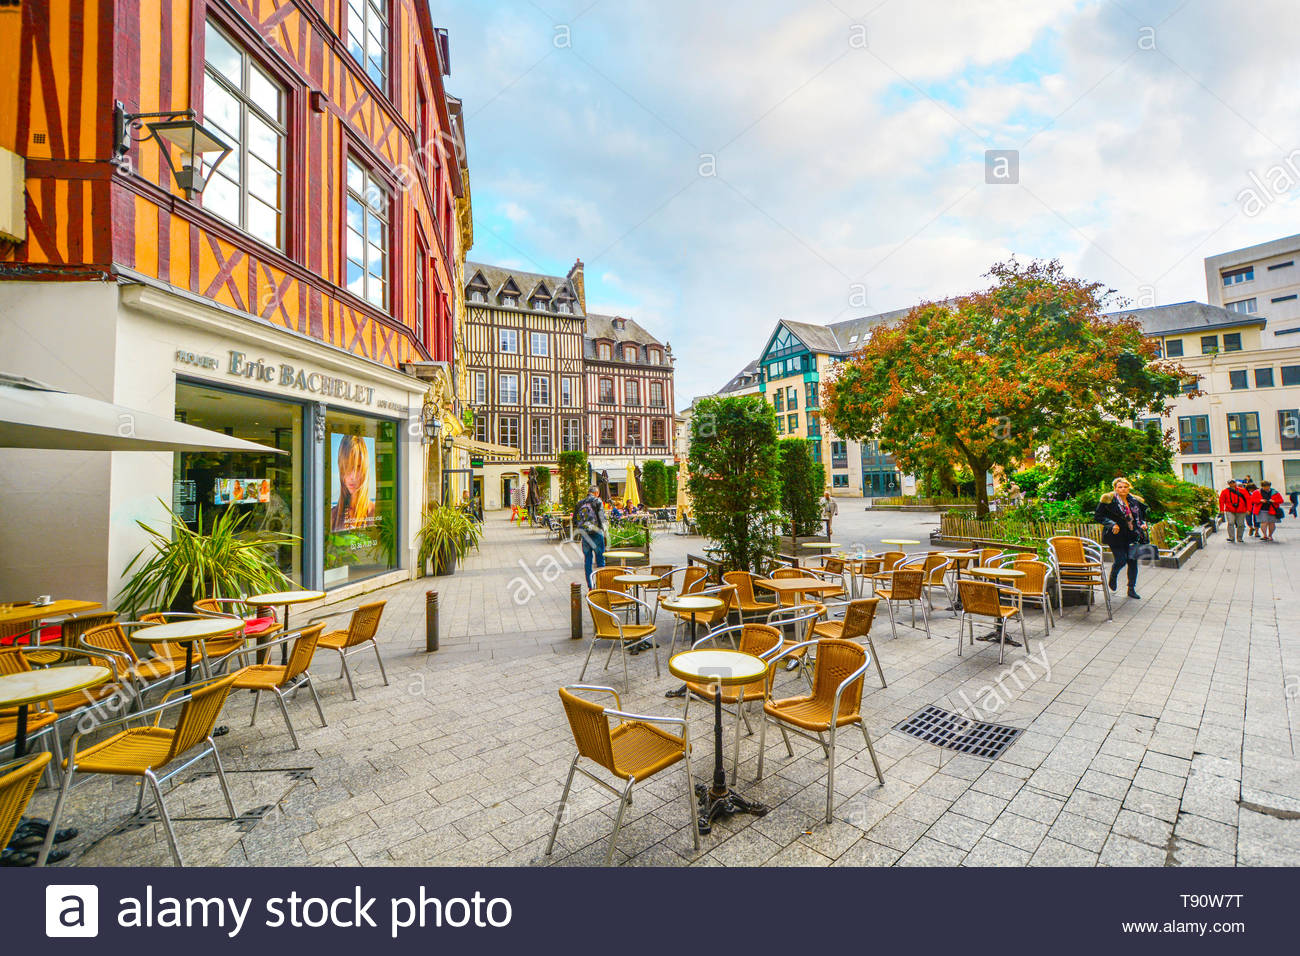 Timber frame homes line a town square in the medieval city of Rouen France with shops, a sidewalk cafe and tourists enjoying a sunny autumn day Stock Photo